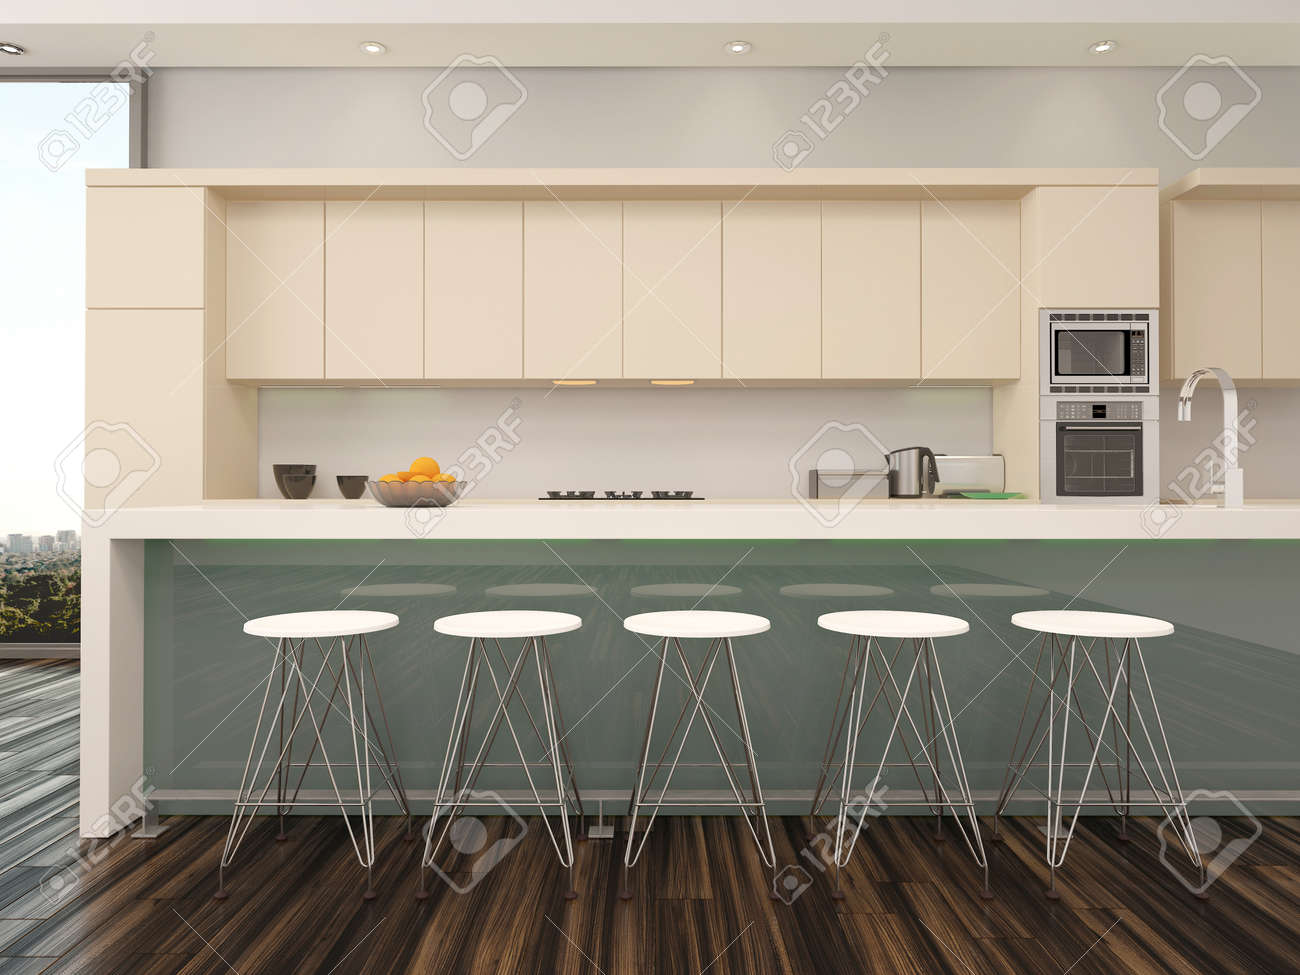 Awe Inspiring Modern Open Plan Apartment Kitchen Interior With A Counter With Creativecarmelina Interior Chair Design Creativecarmelinacom